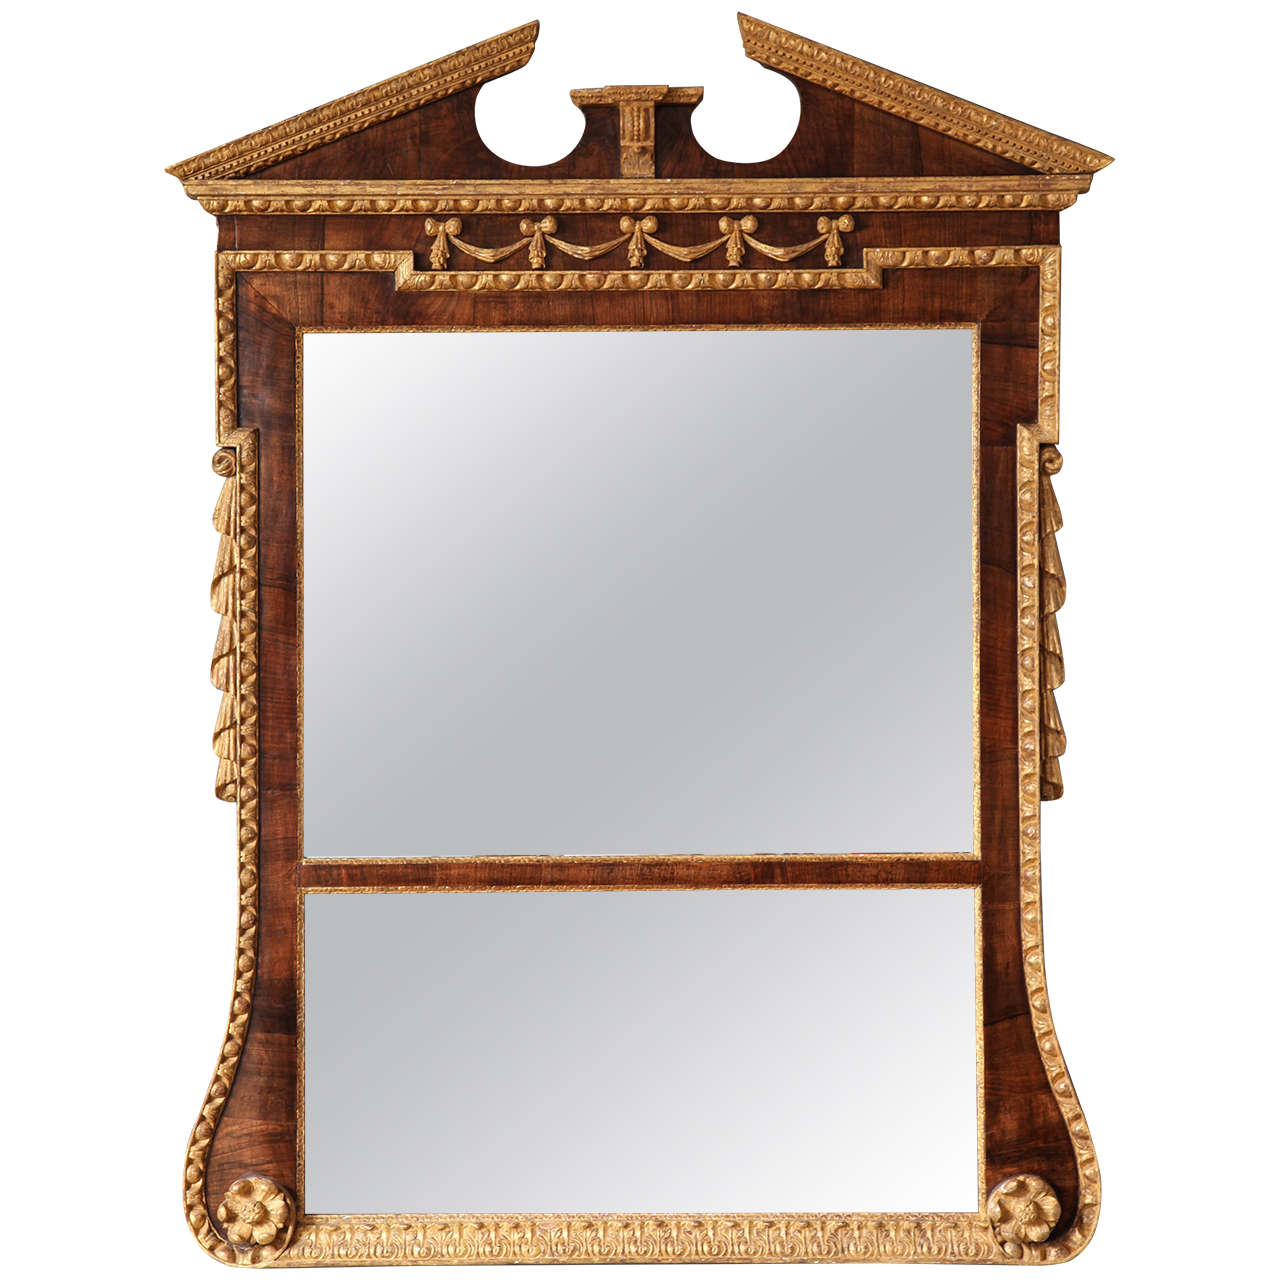 Georgian Walnut And Parcel Gilt Overmantel Mirror 1